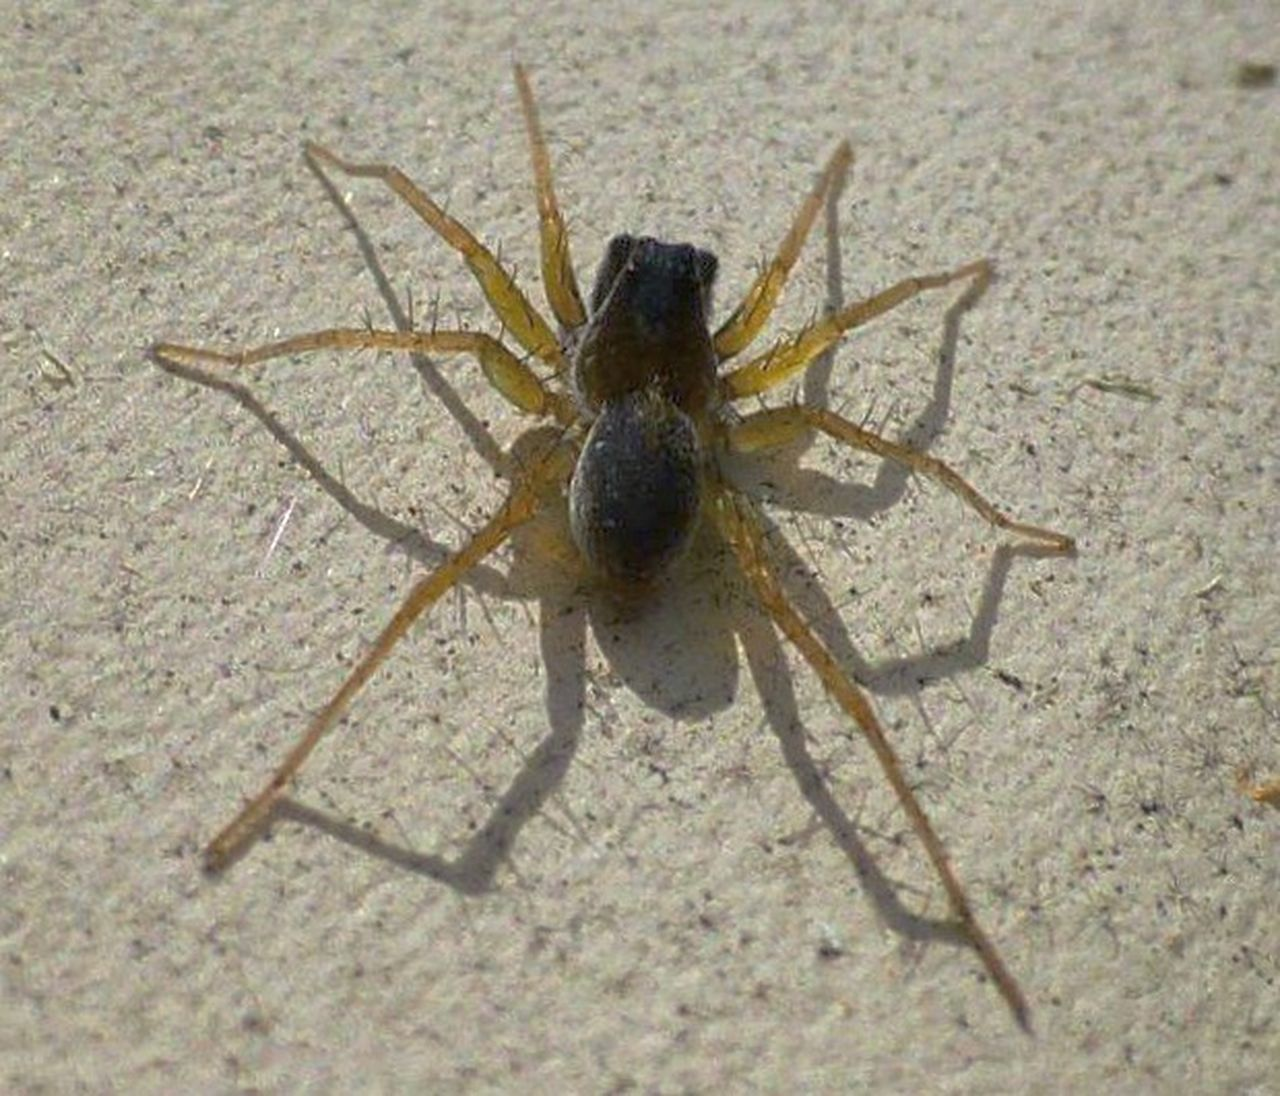 My Backyard Macro Nature Arachnid Arachni-therapy Wildlife & Nature Arachnipocalypse Macrophotography Spider